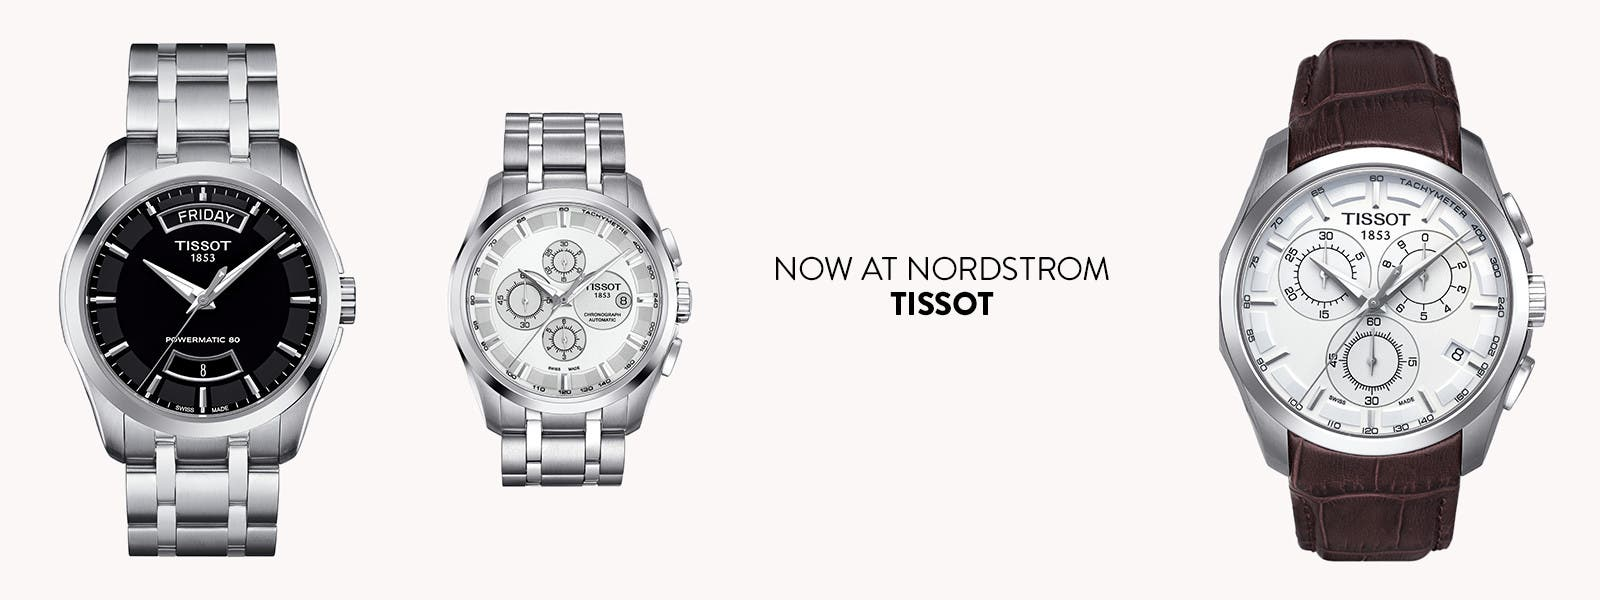 Now at Nordstrom: Tissot watches.